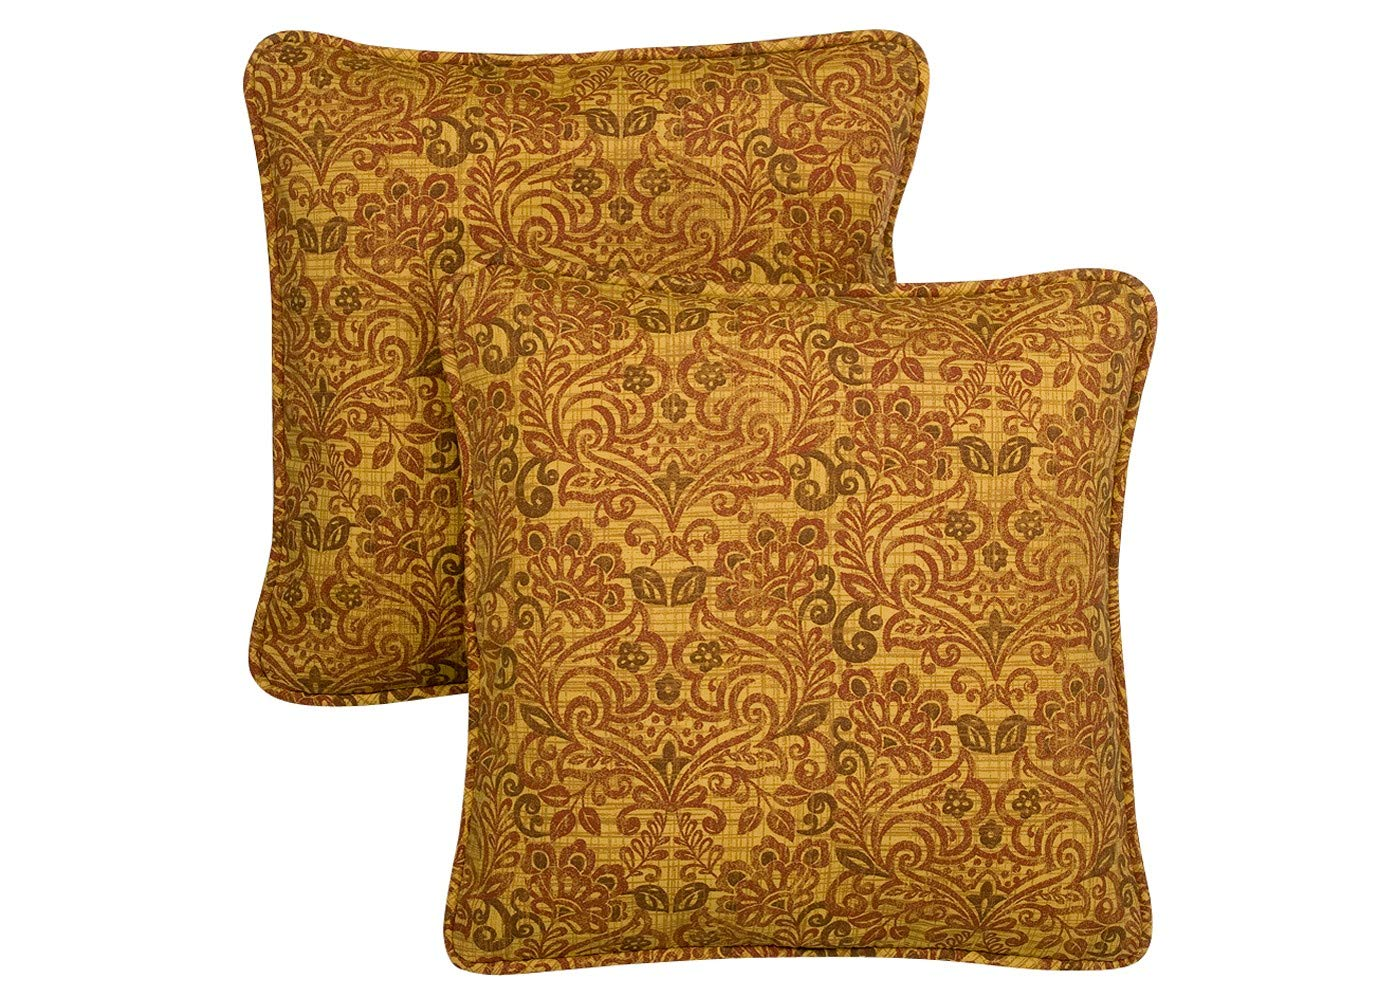 Quality Outdoor Living 69-MG02P Decorative Throw Pillow, Venetian Old Gold